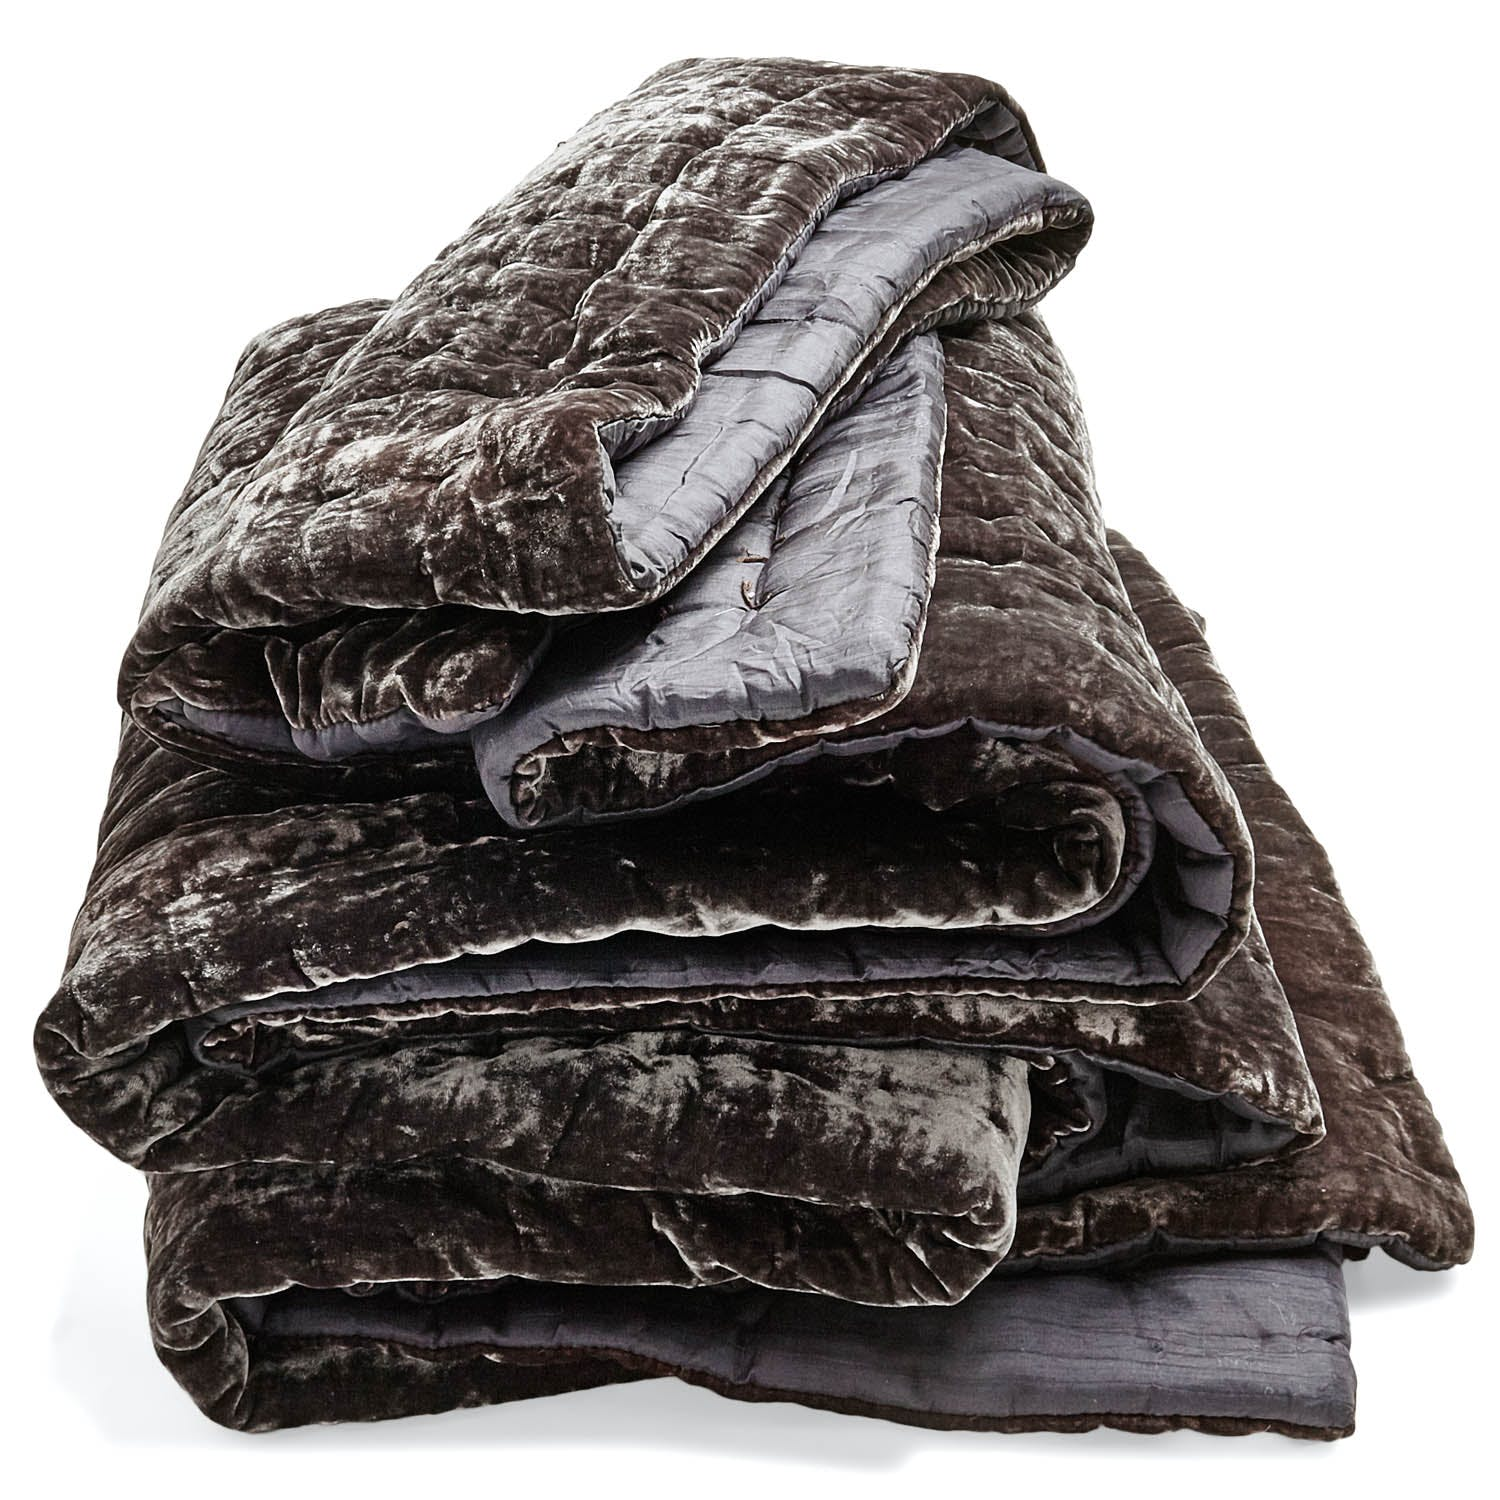 abcDNA Luminous Charcoal Velvet Quilt